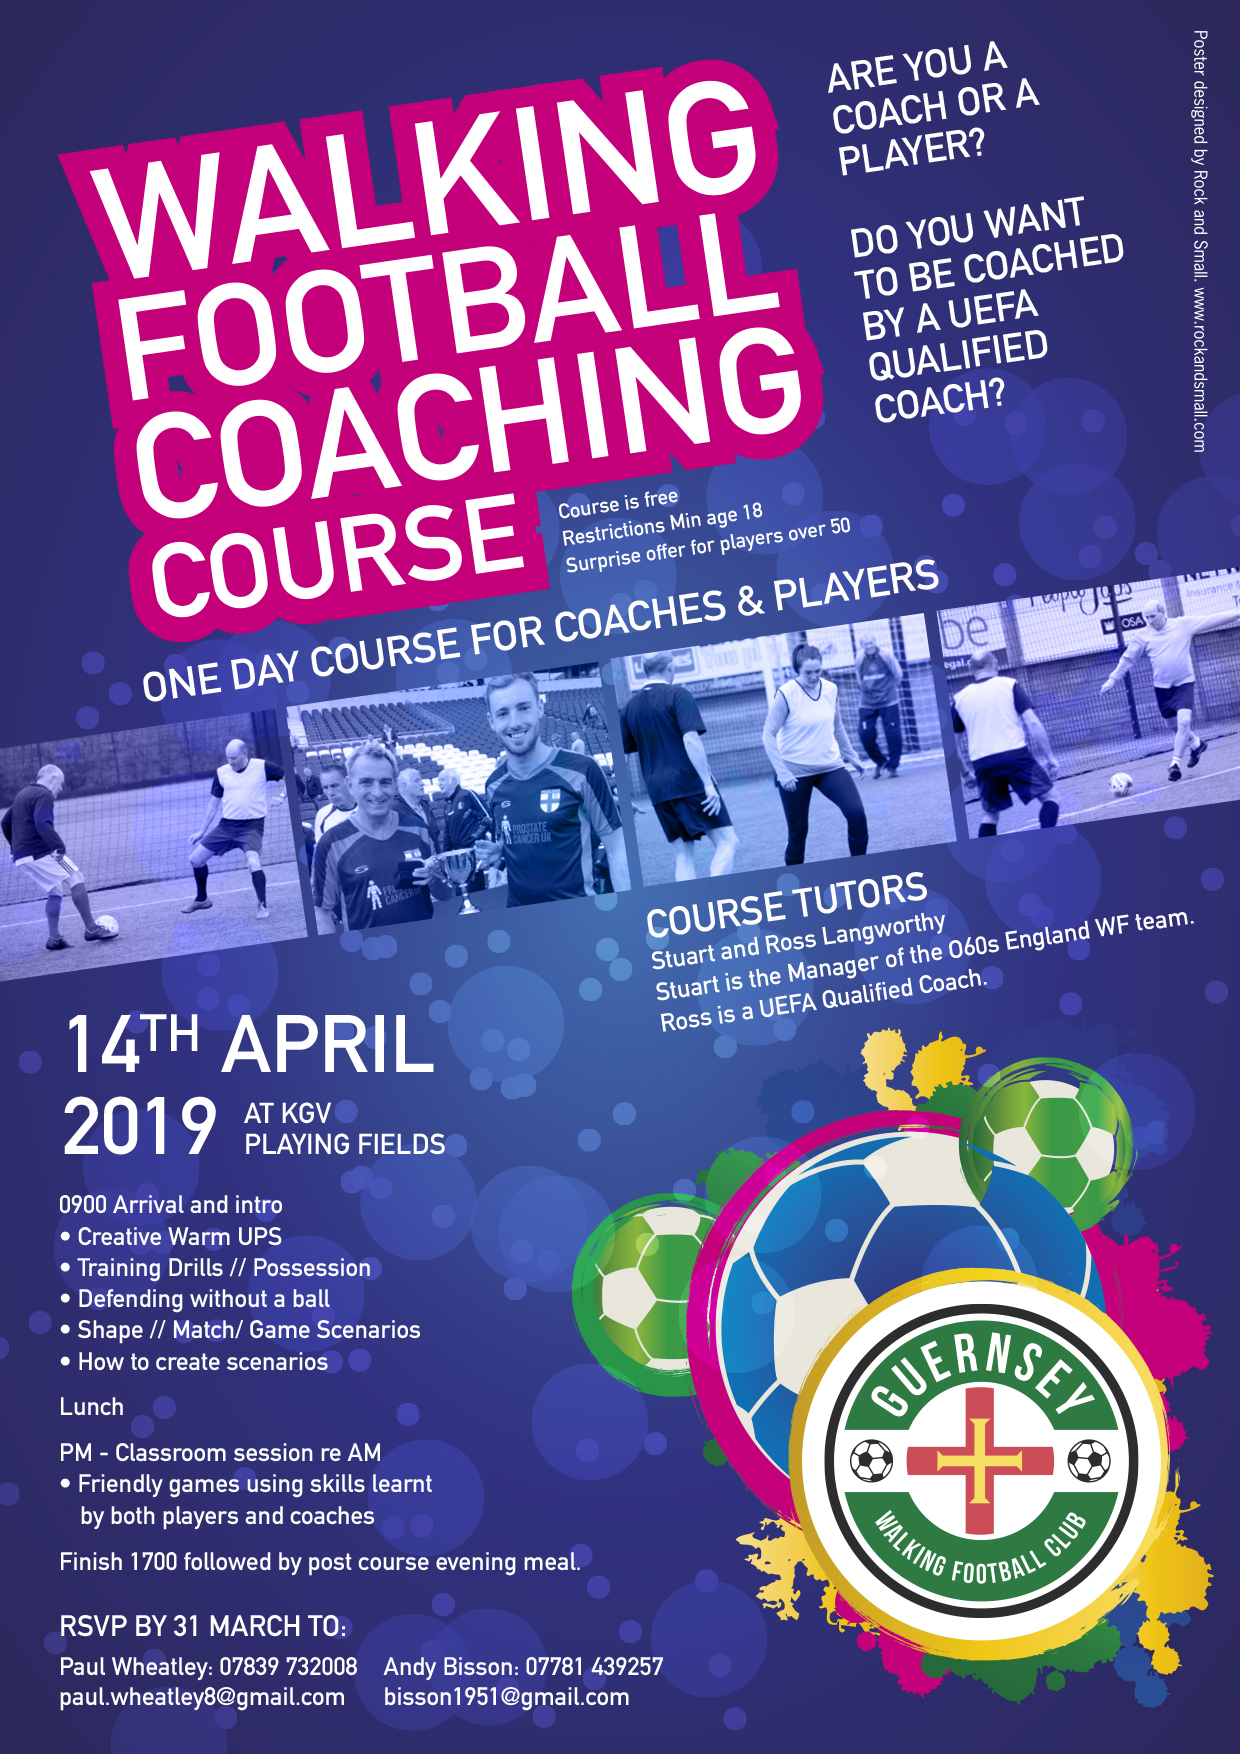 COACHING COURSE POSTER